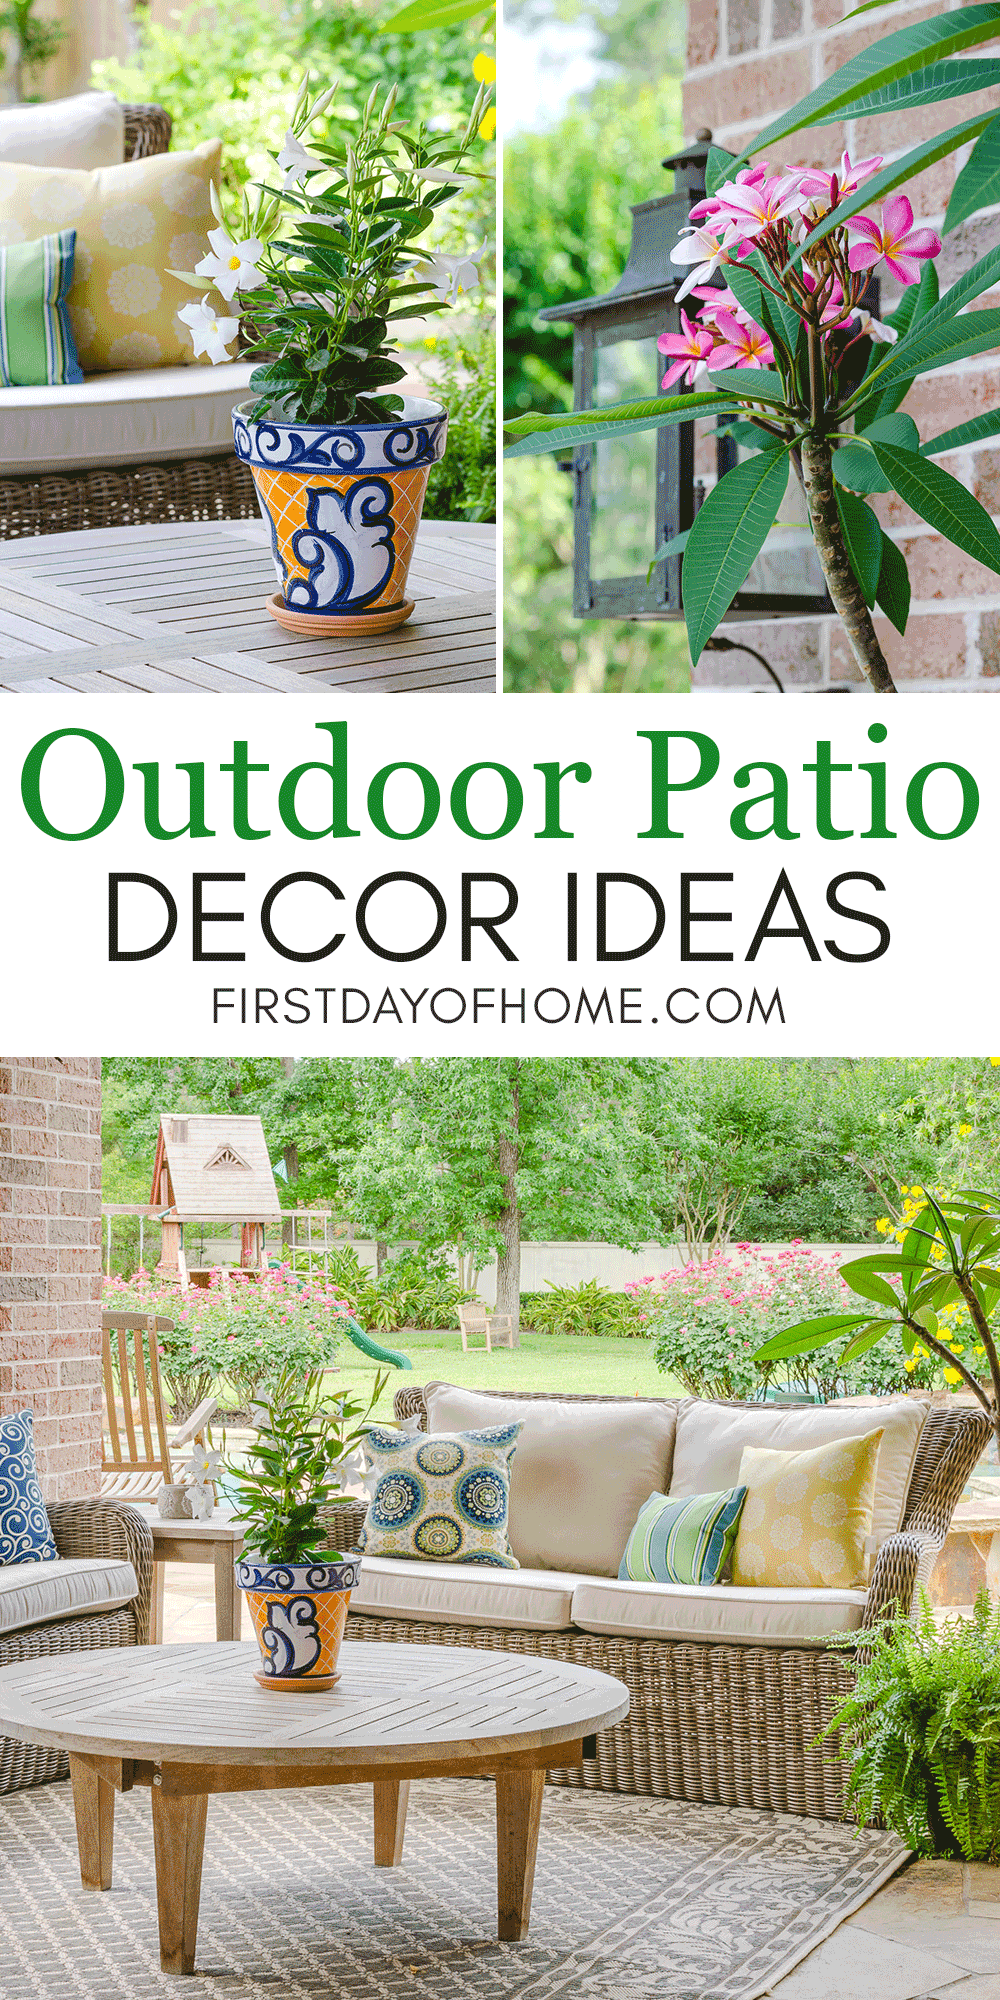 Patio decorating ideas with blue and yellow color scheme and flowering plants